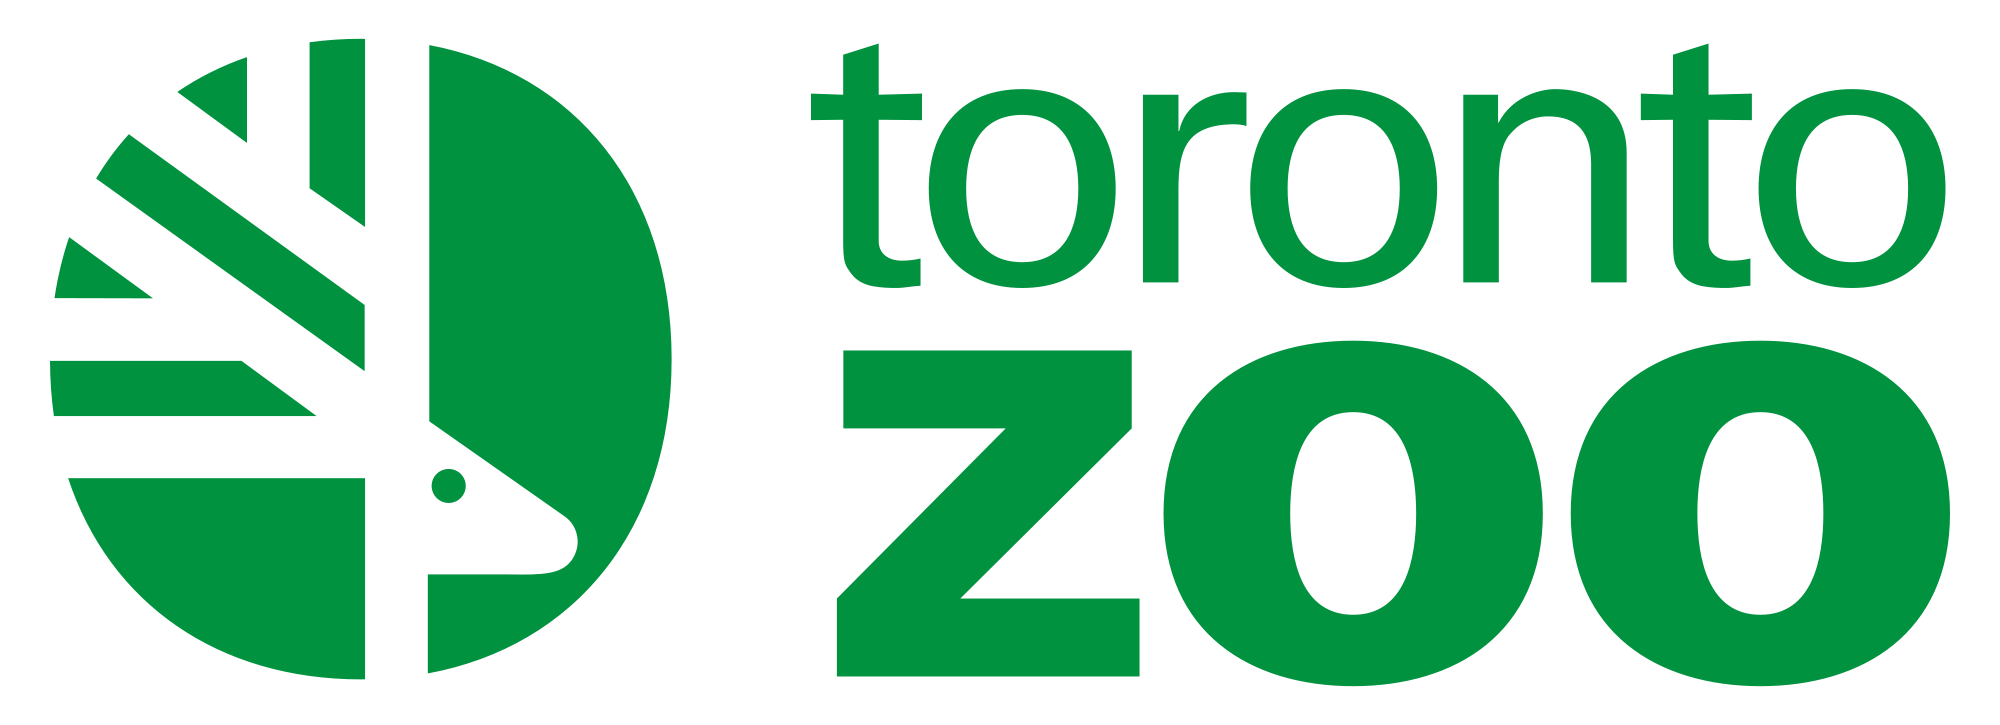 File toronto svg wikimedia. Zoo vector logo svg free stock